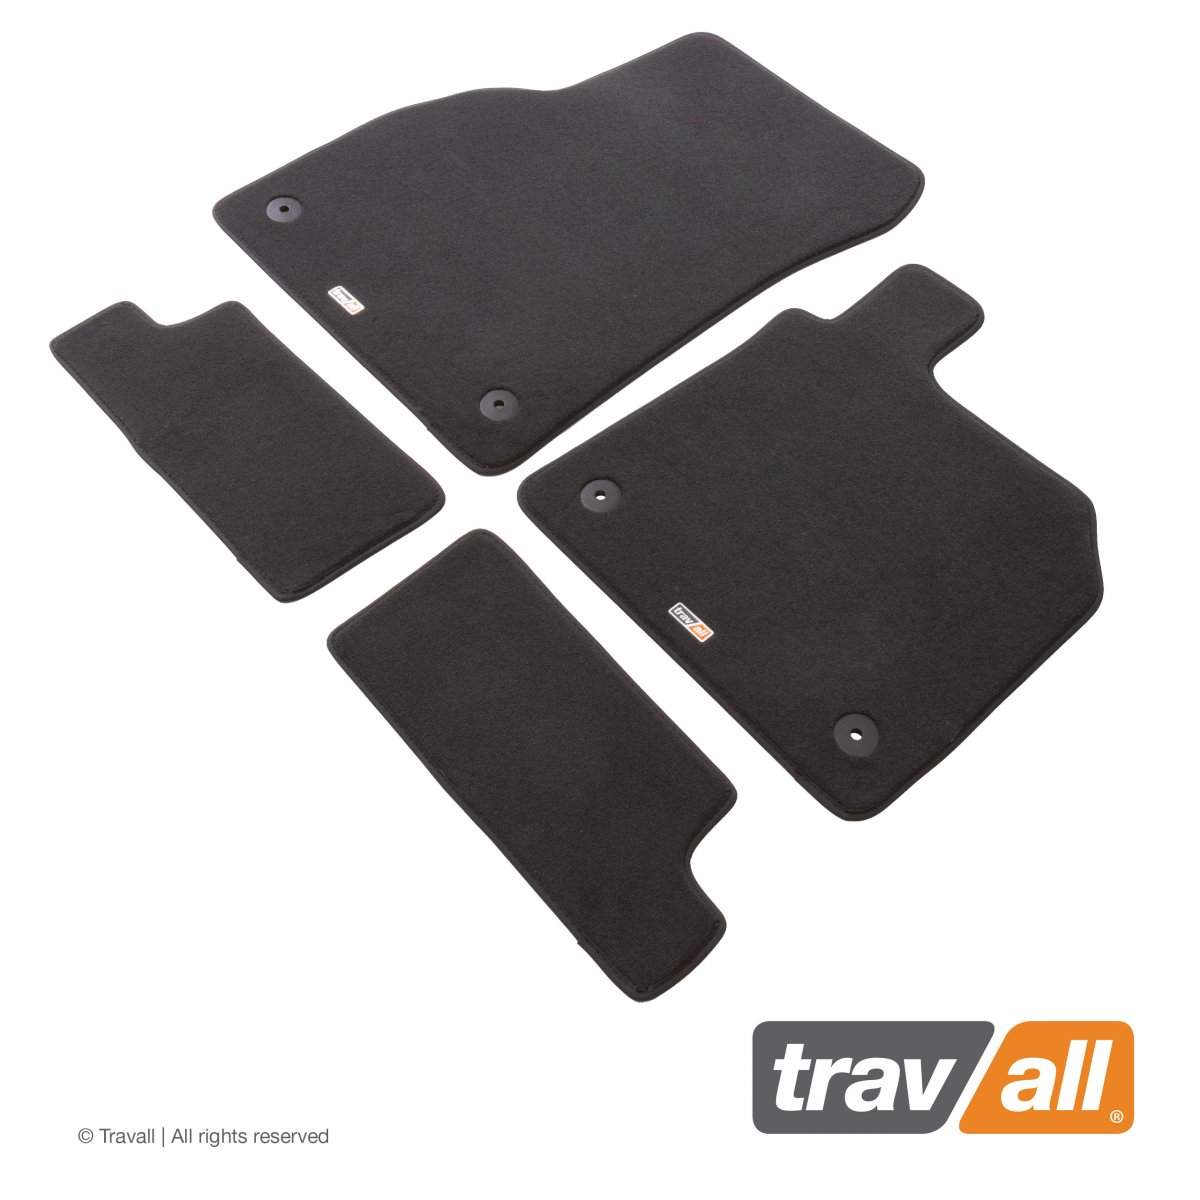 Travall® Mats Urban Edition [RHD] TCM1096DGR-Luxury car mat footwell protection for AUDI TT COUPE / ROADSTER (2014-)